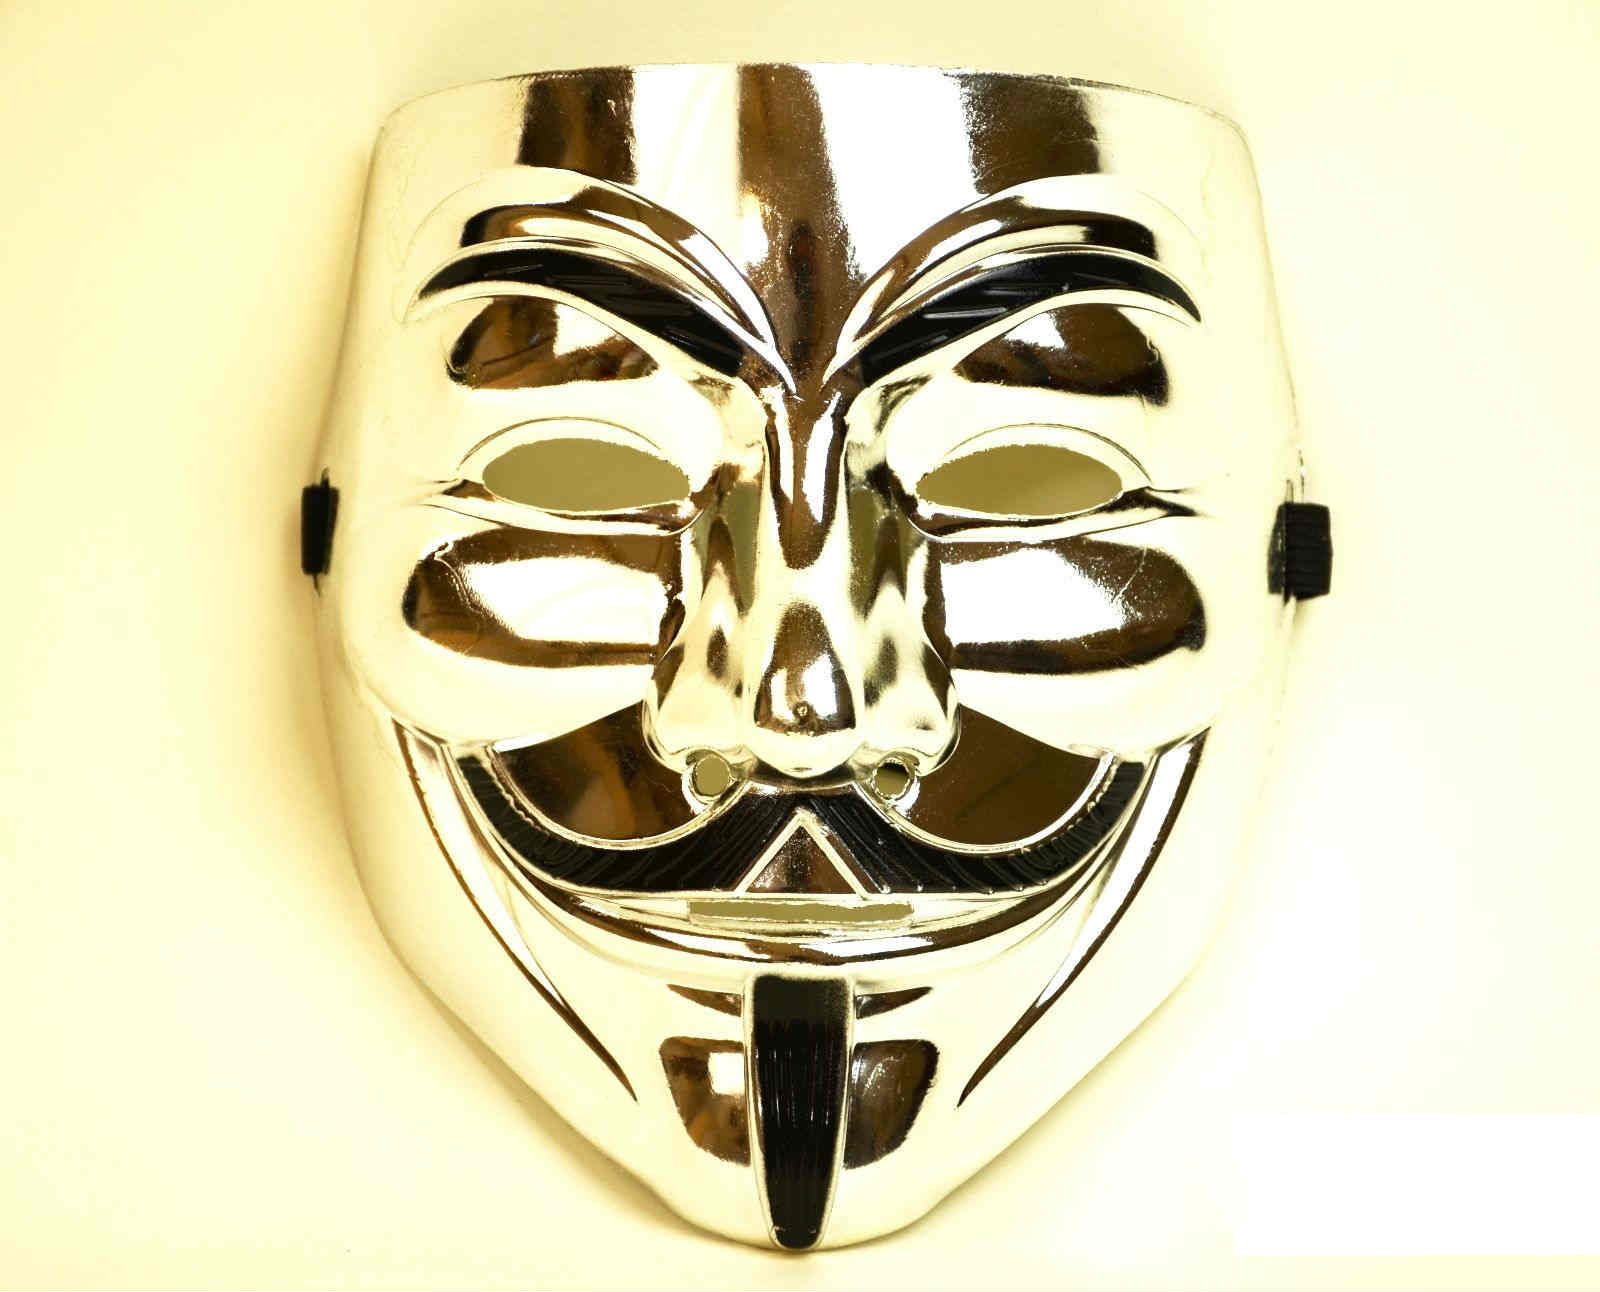 yellow kitchen rugs refinishing cabinets top high quality alkaline vendetta masks for sale in jamaica!